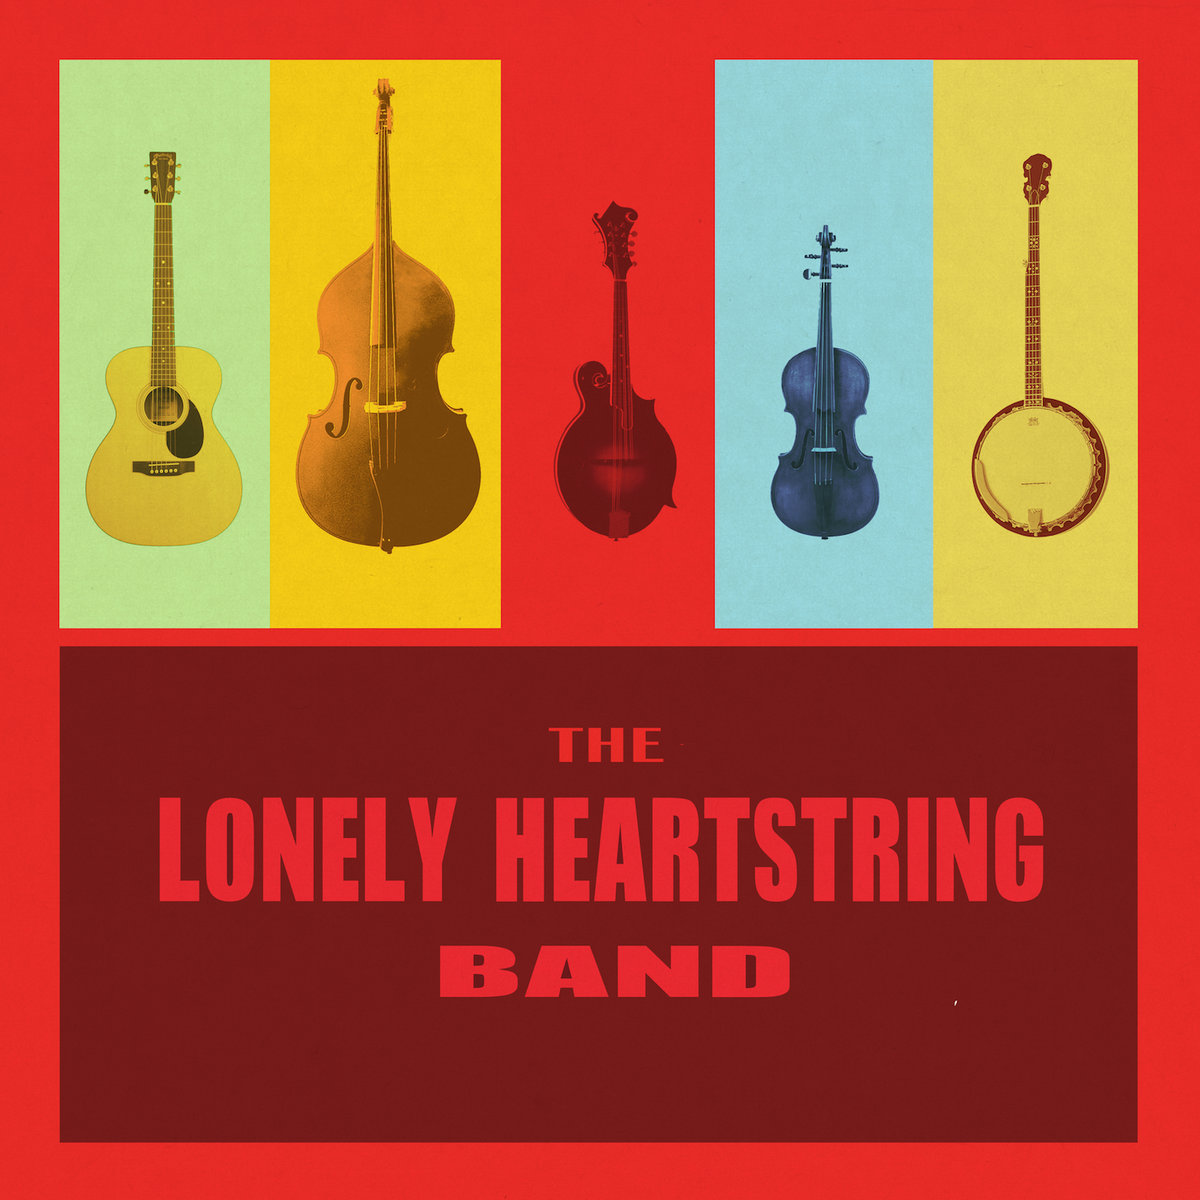 Norwegian Wood | The Lonely Heartstring Band